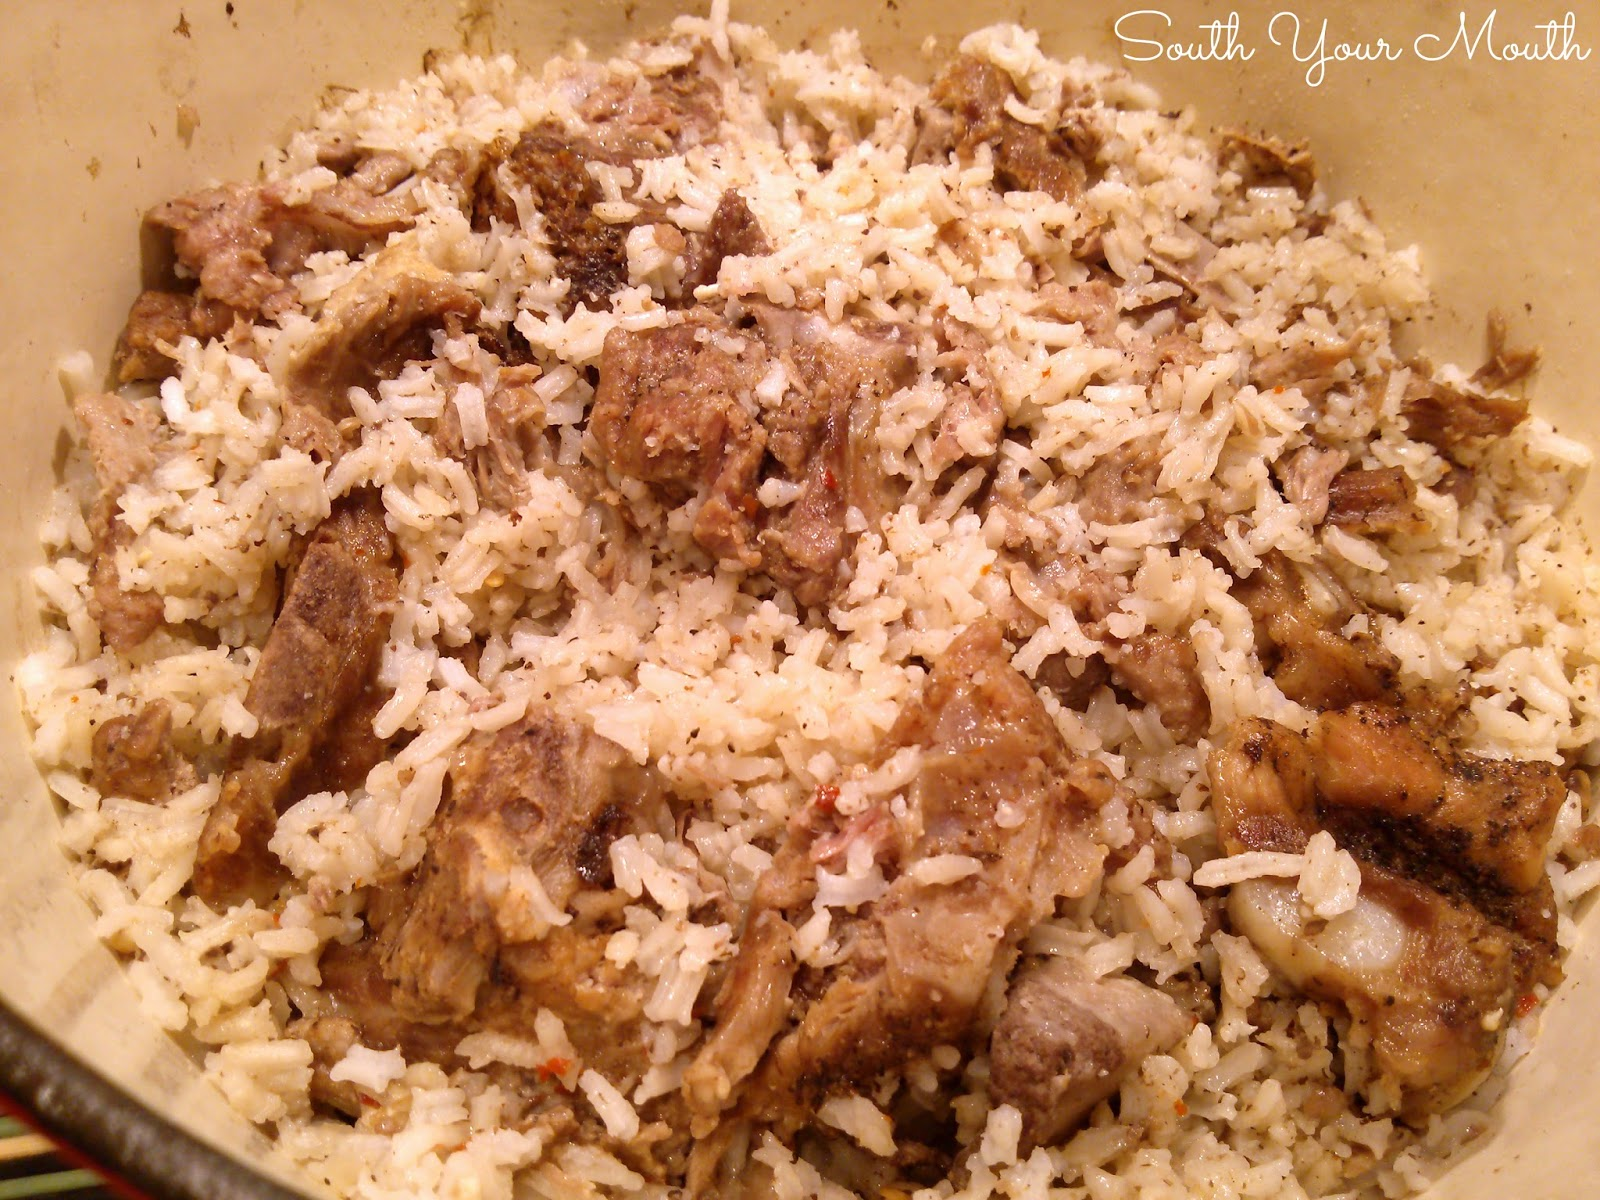 Neck Bones and Rice | Pork neck bones and rice is classic Southern comfort food.